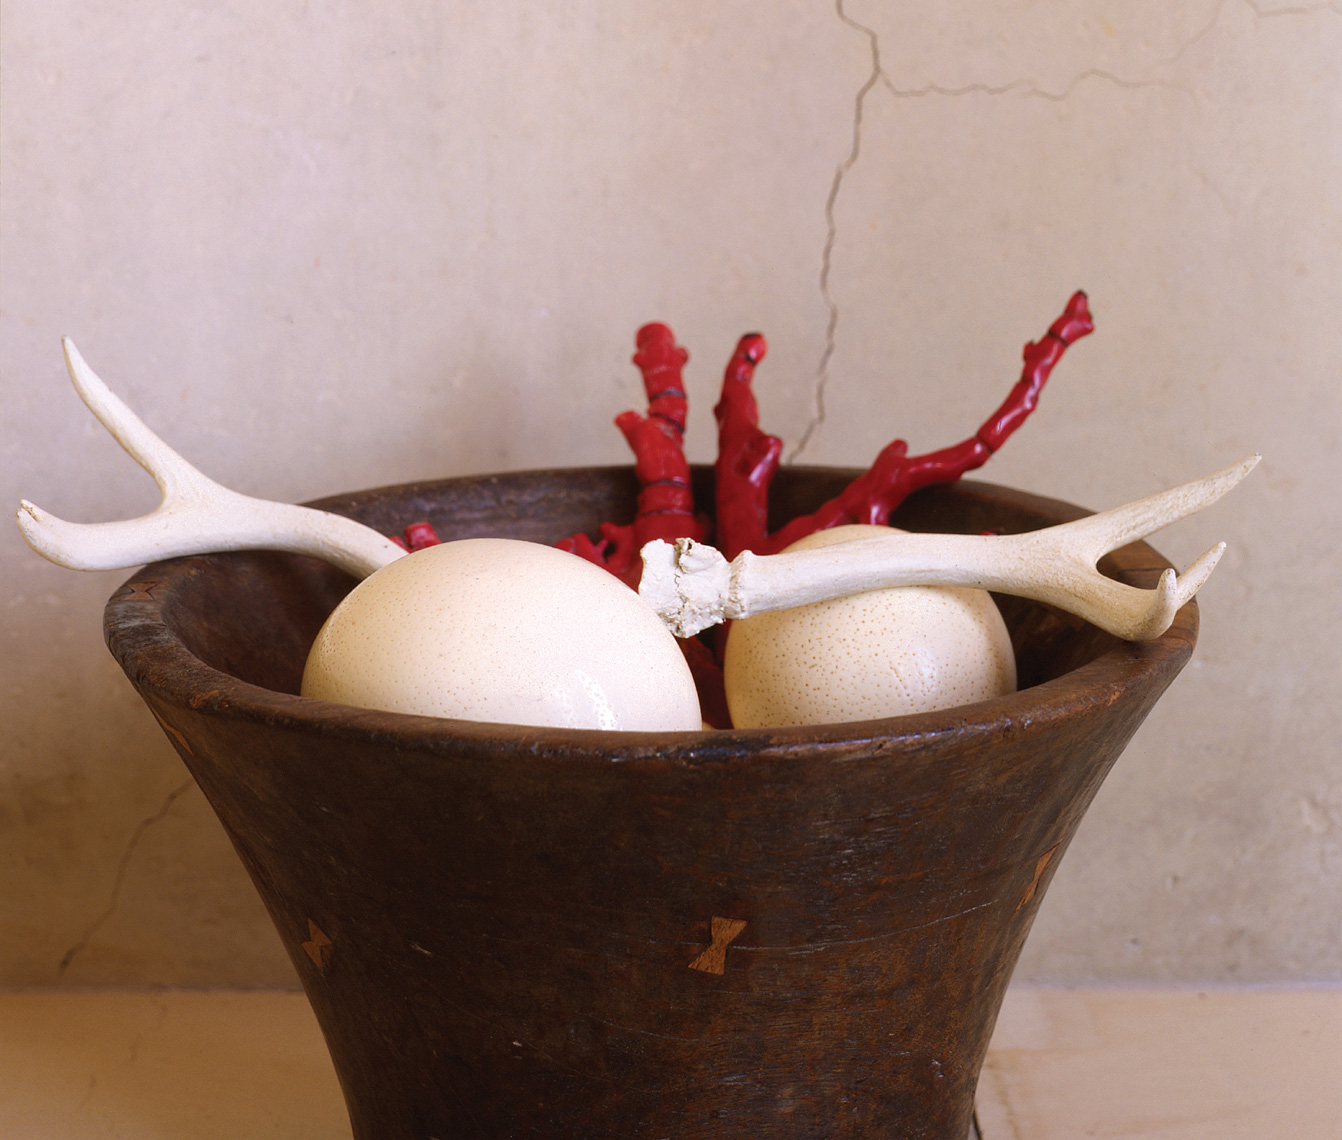 Horn and ostrich eggs in wood bowl hilip Harvey Photography, San Francisco, California, still life, interiors, food, lifestyle and product photography San Francisco product photographer